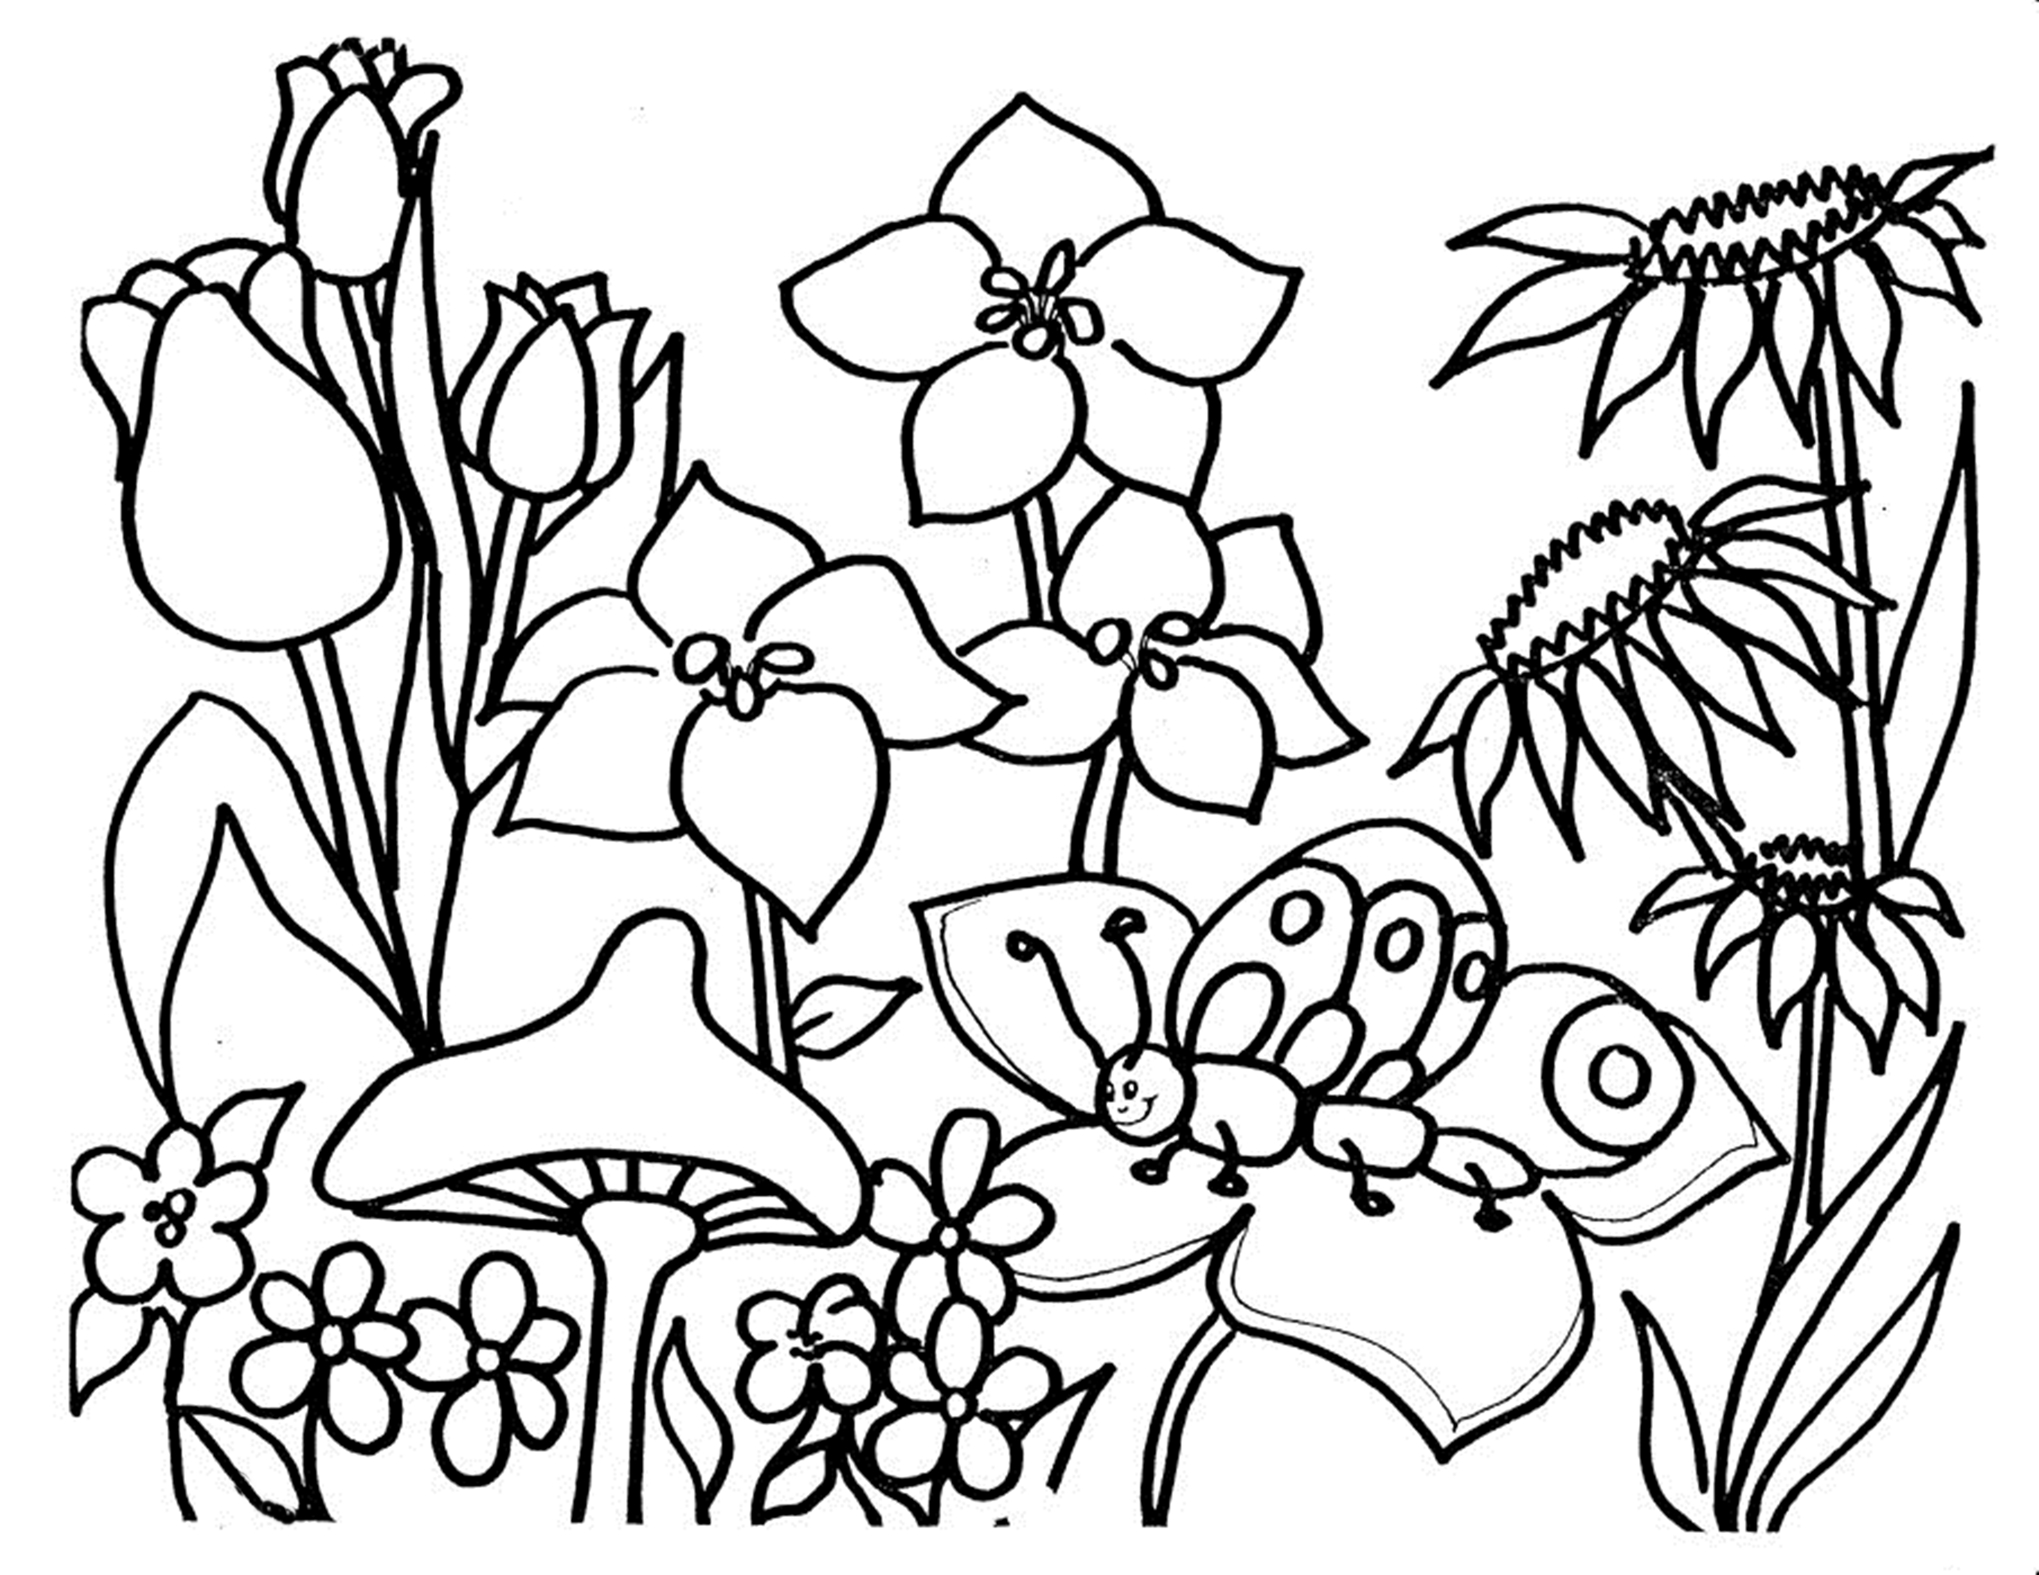 coloring flower free printable flower coloring pages for kids best coloring flower 1 1